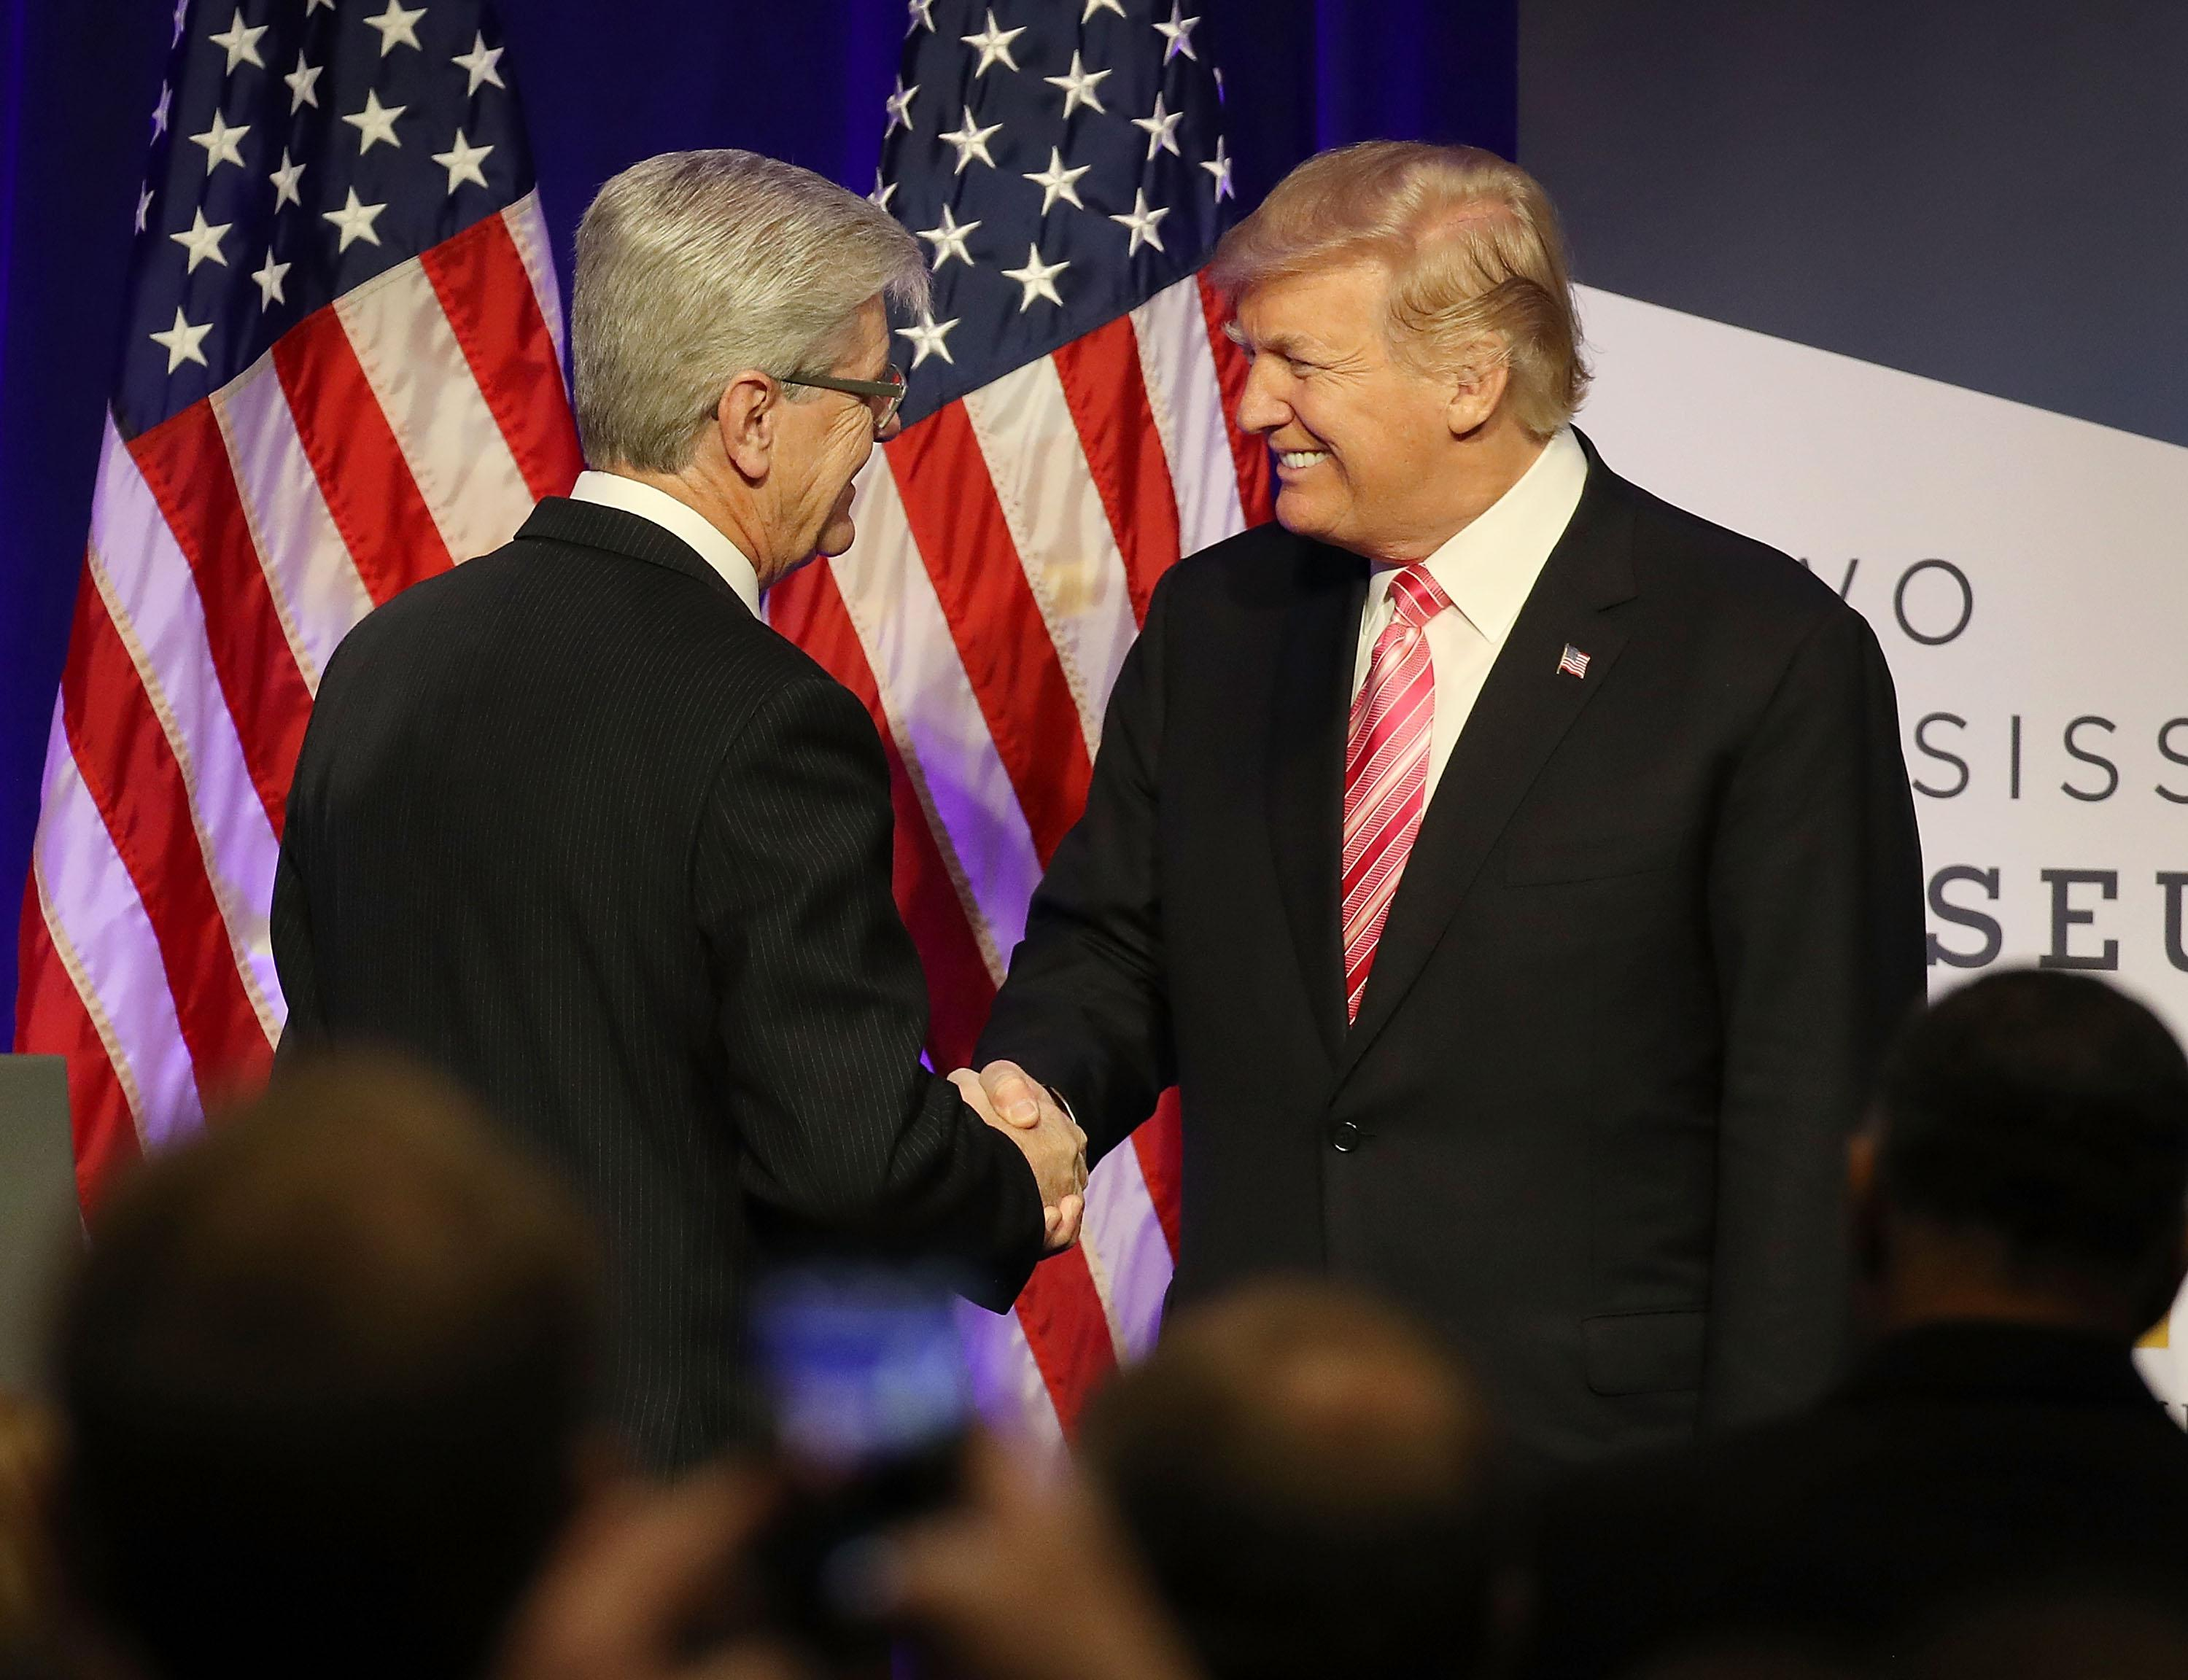 JACKSON, MS - DECEMBER 09:  President Donald Trump is introduced by  Mississippi Governor Phil Bryant to speak after touring the Mississippi Civil Rights Museum on December 9, 2017 in Jackson, Mississippi. The museum had a grand opening event with hopes to promote a greater understanding of the Mississippi Civil Rights Movement and its impact by highlighting the strength and sacrifices of its people.  (Photo by Joe Raedle/Getty Images)